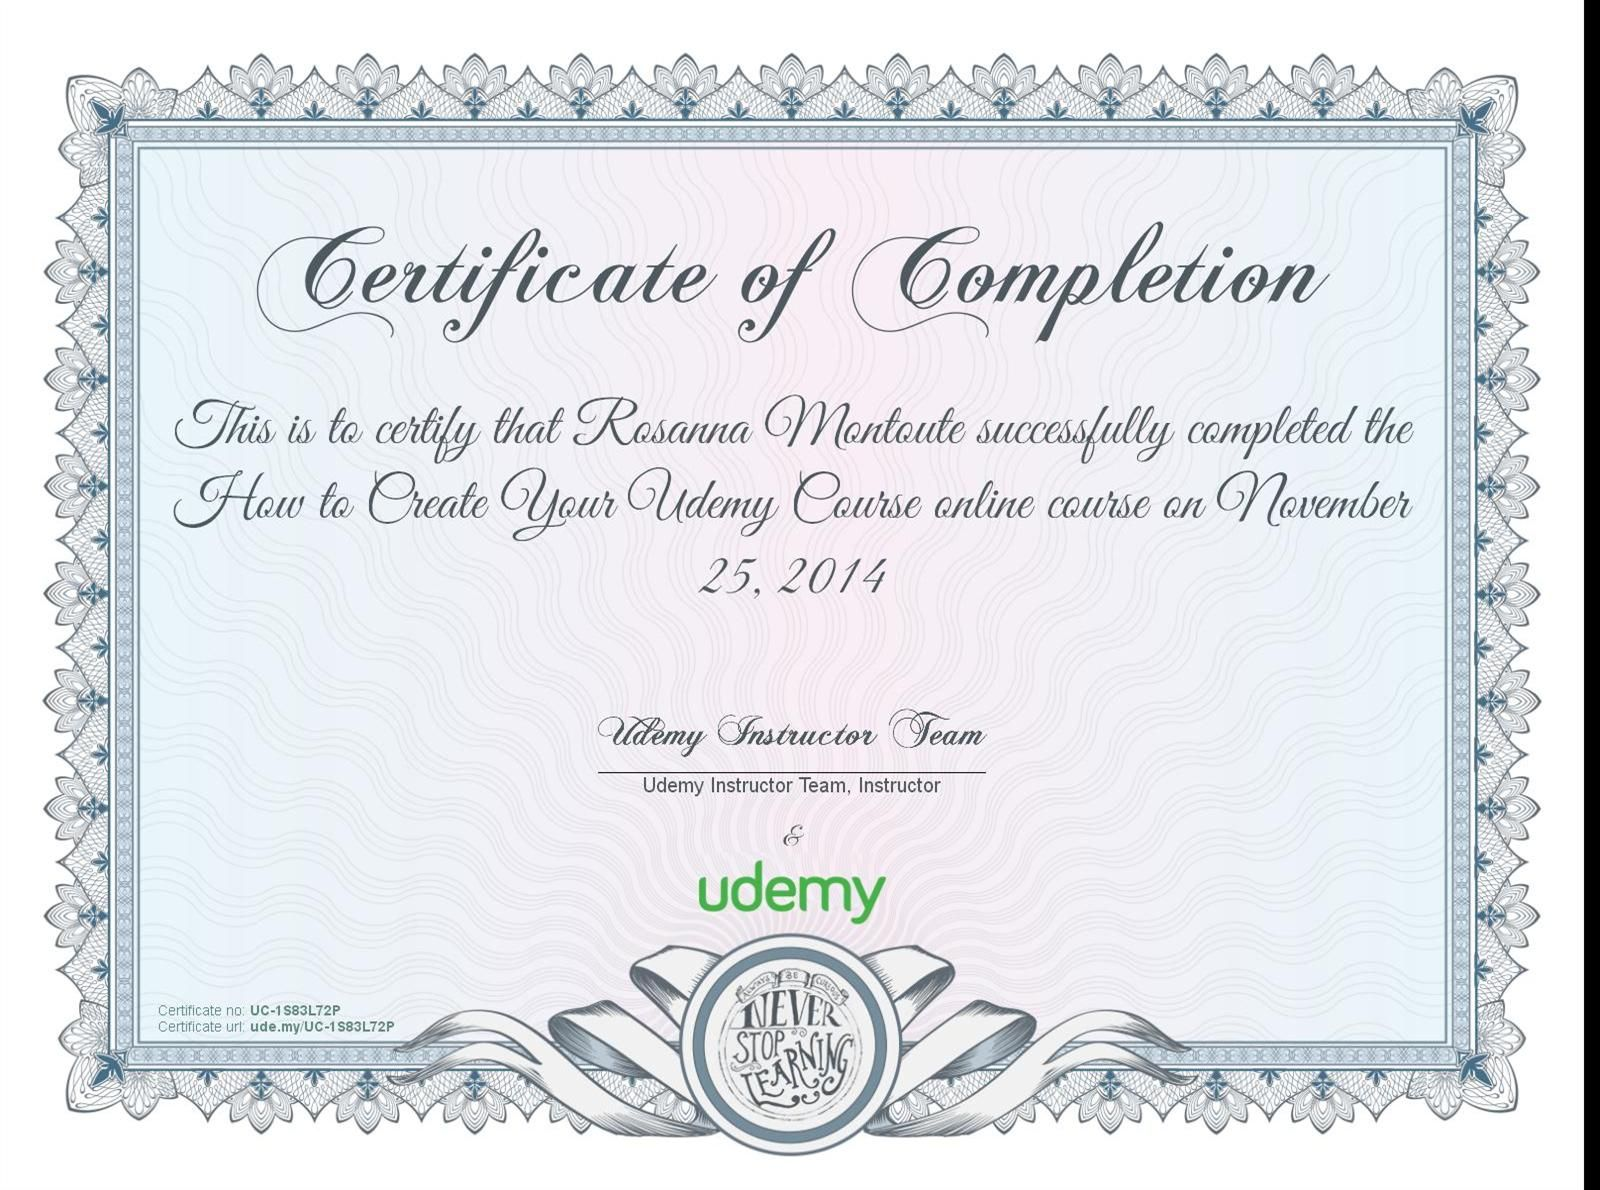 Completion Certificate For How To Create Your Udemy Course Certificate Of Completion Udemy Online Courses